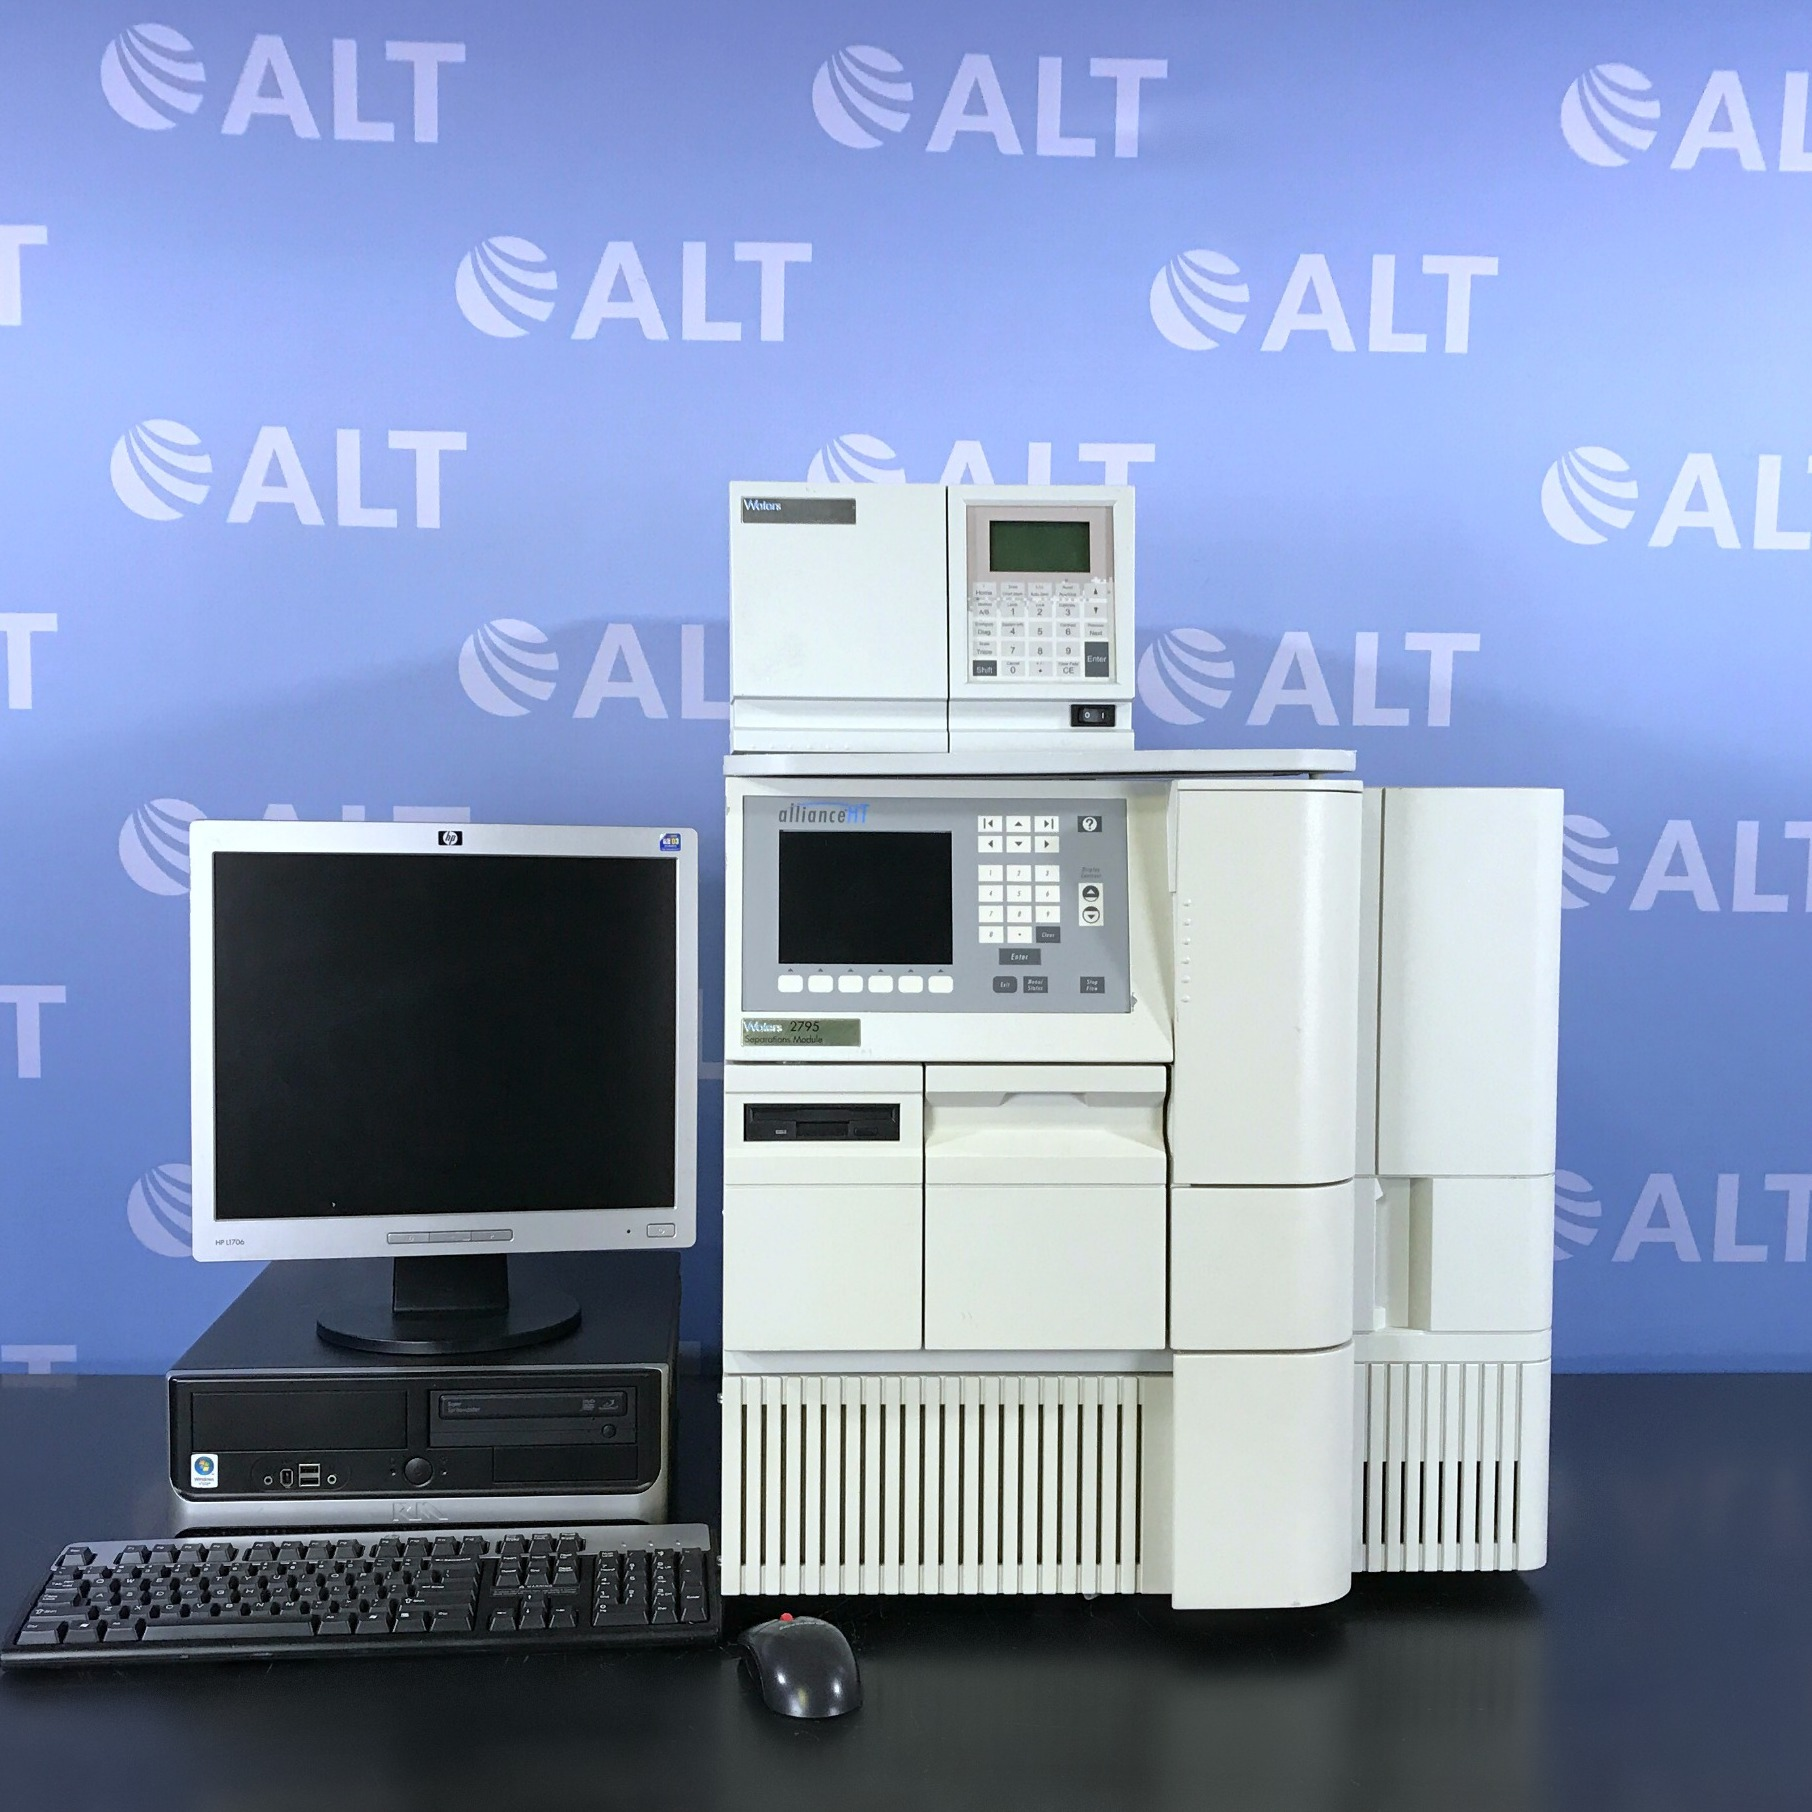 Waters Alliance 2795 HPLC with 2489 UV/Visible Detector Image